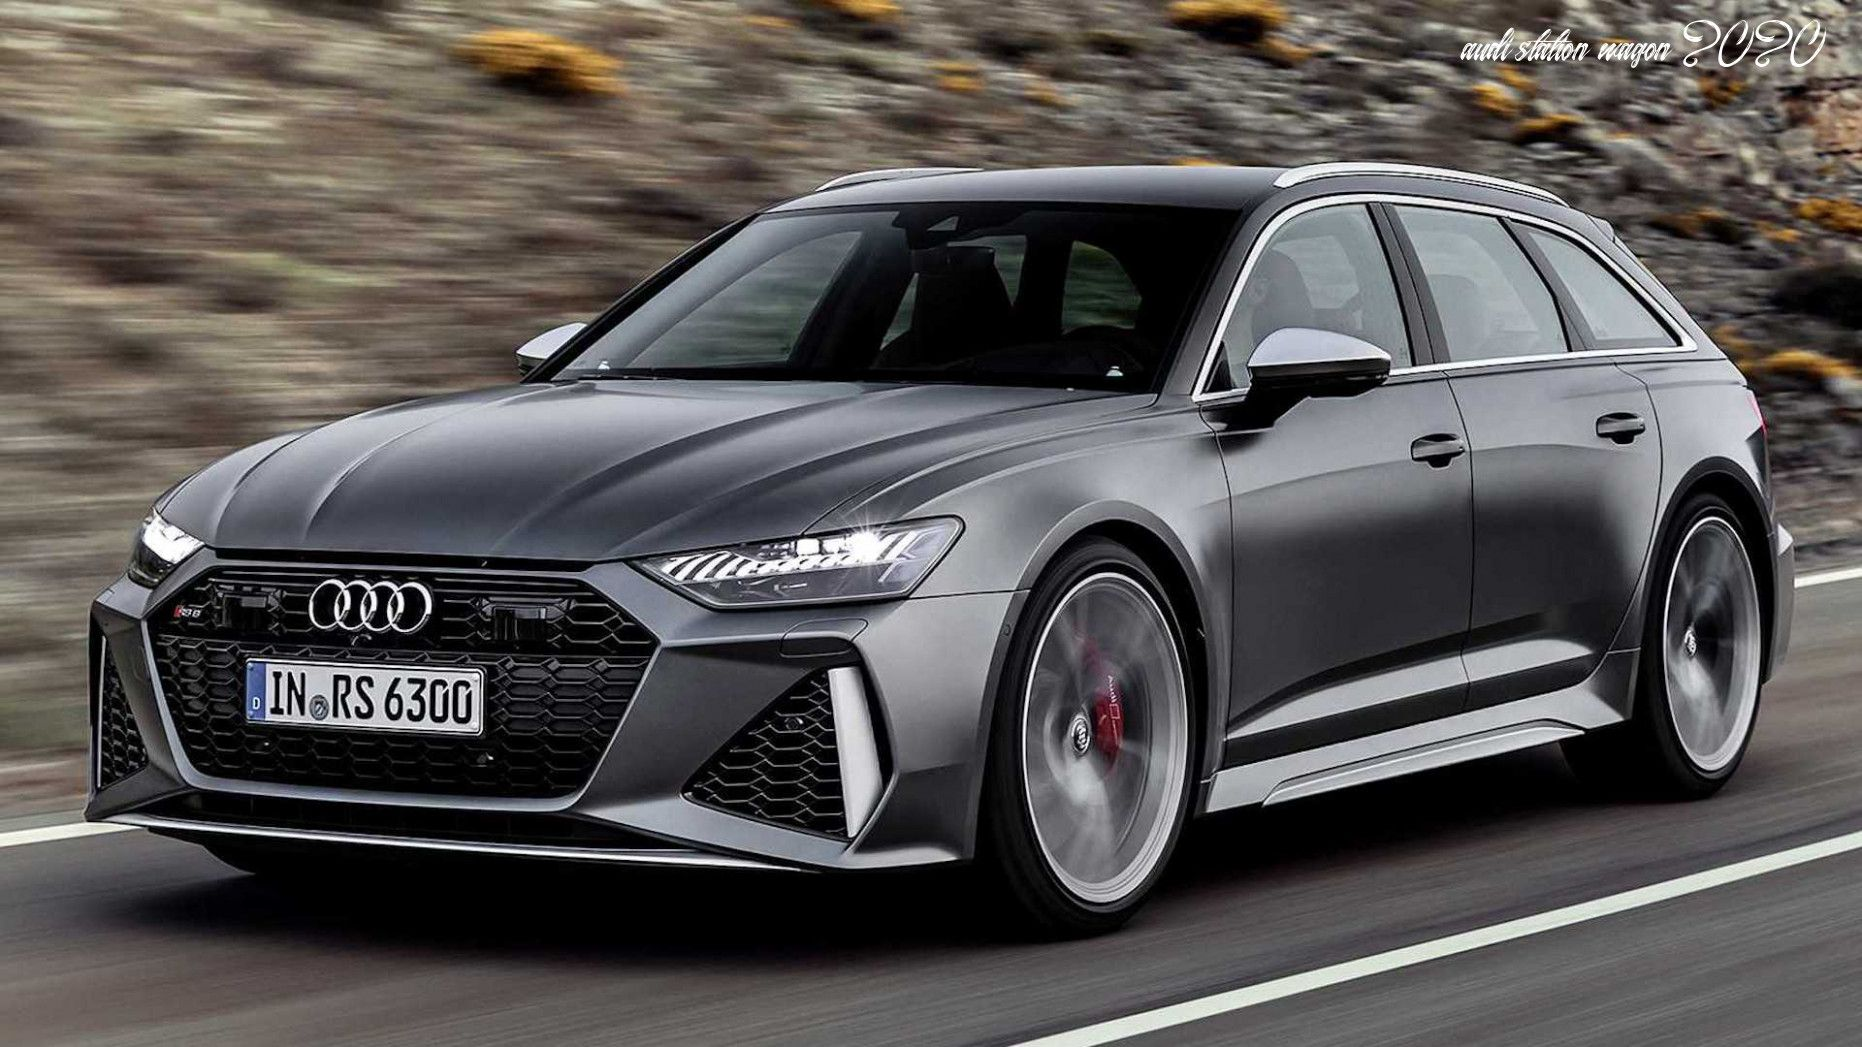 Audi Station Wagon 2020 In 2020 Audi Wagon Audi Rs6 Audi Allroad